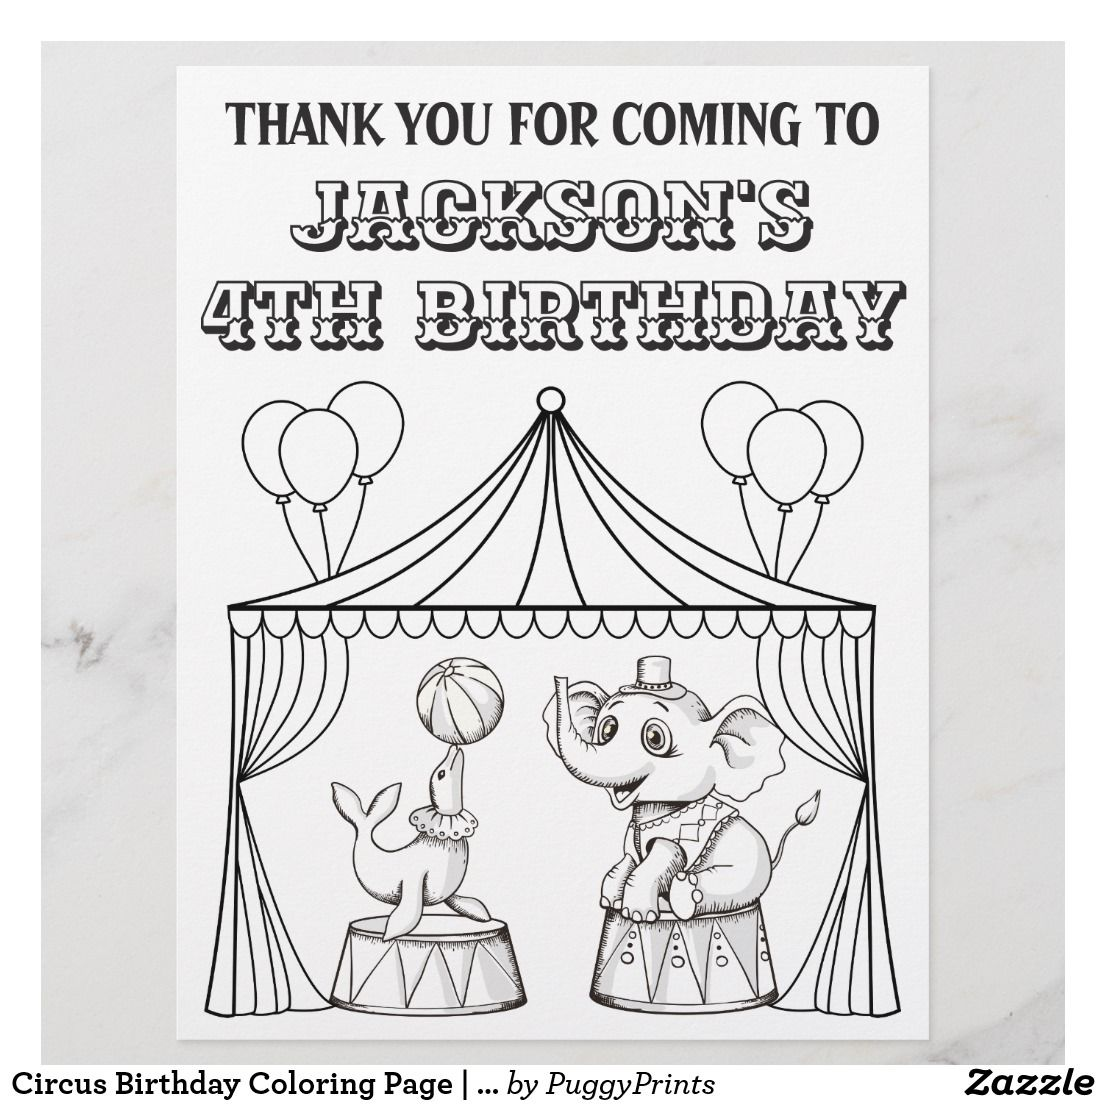 Circus Birthday Coloring Page Coloring Sheet Zazzle Com